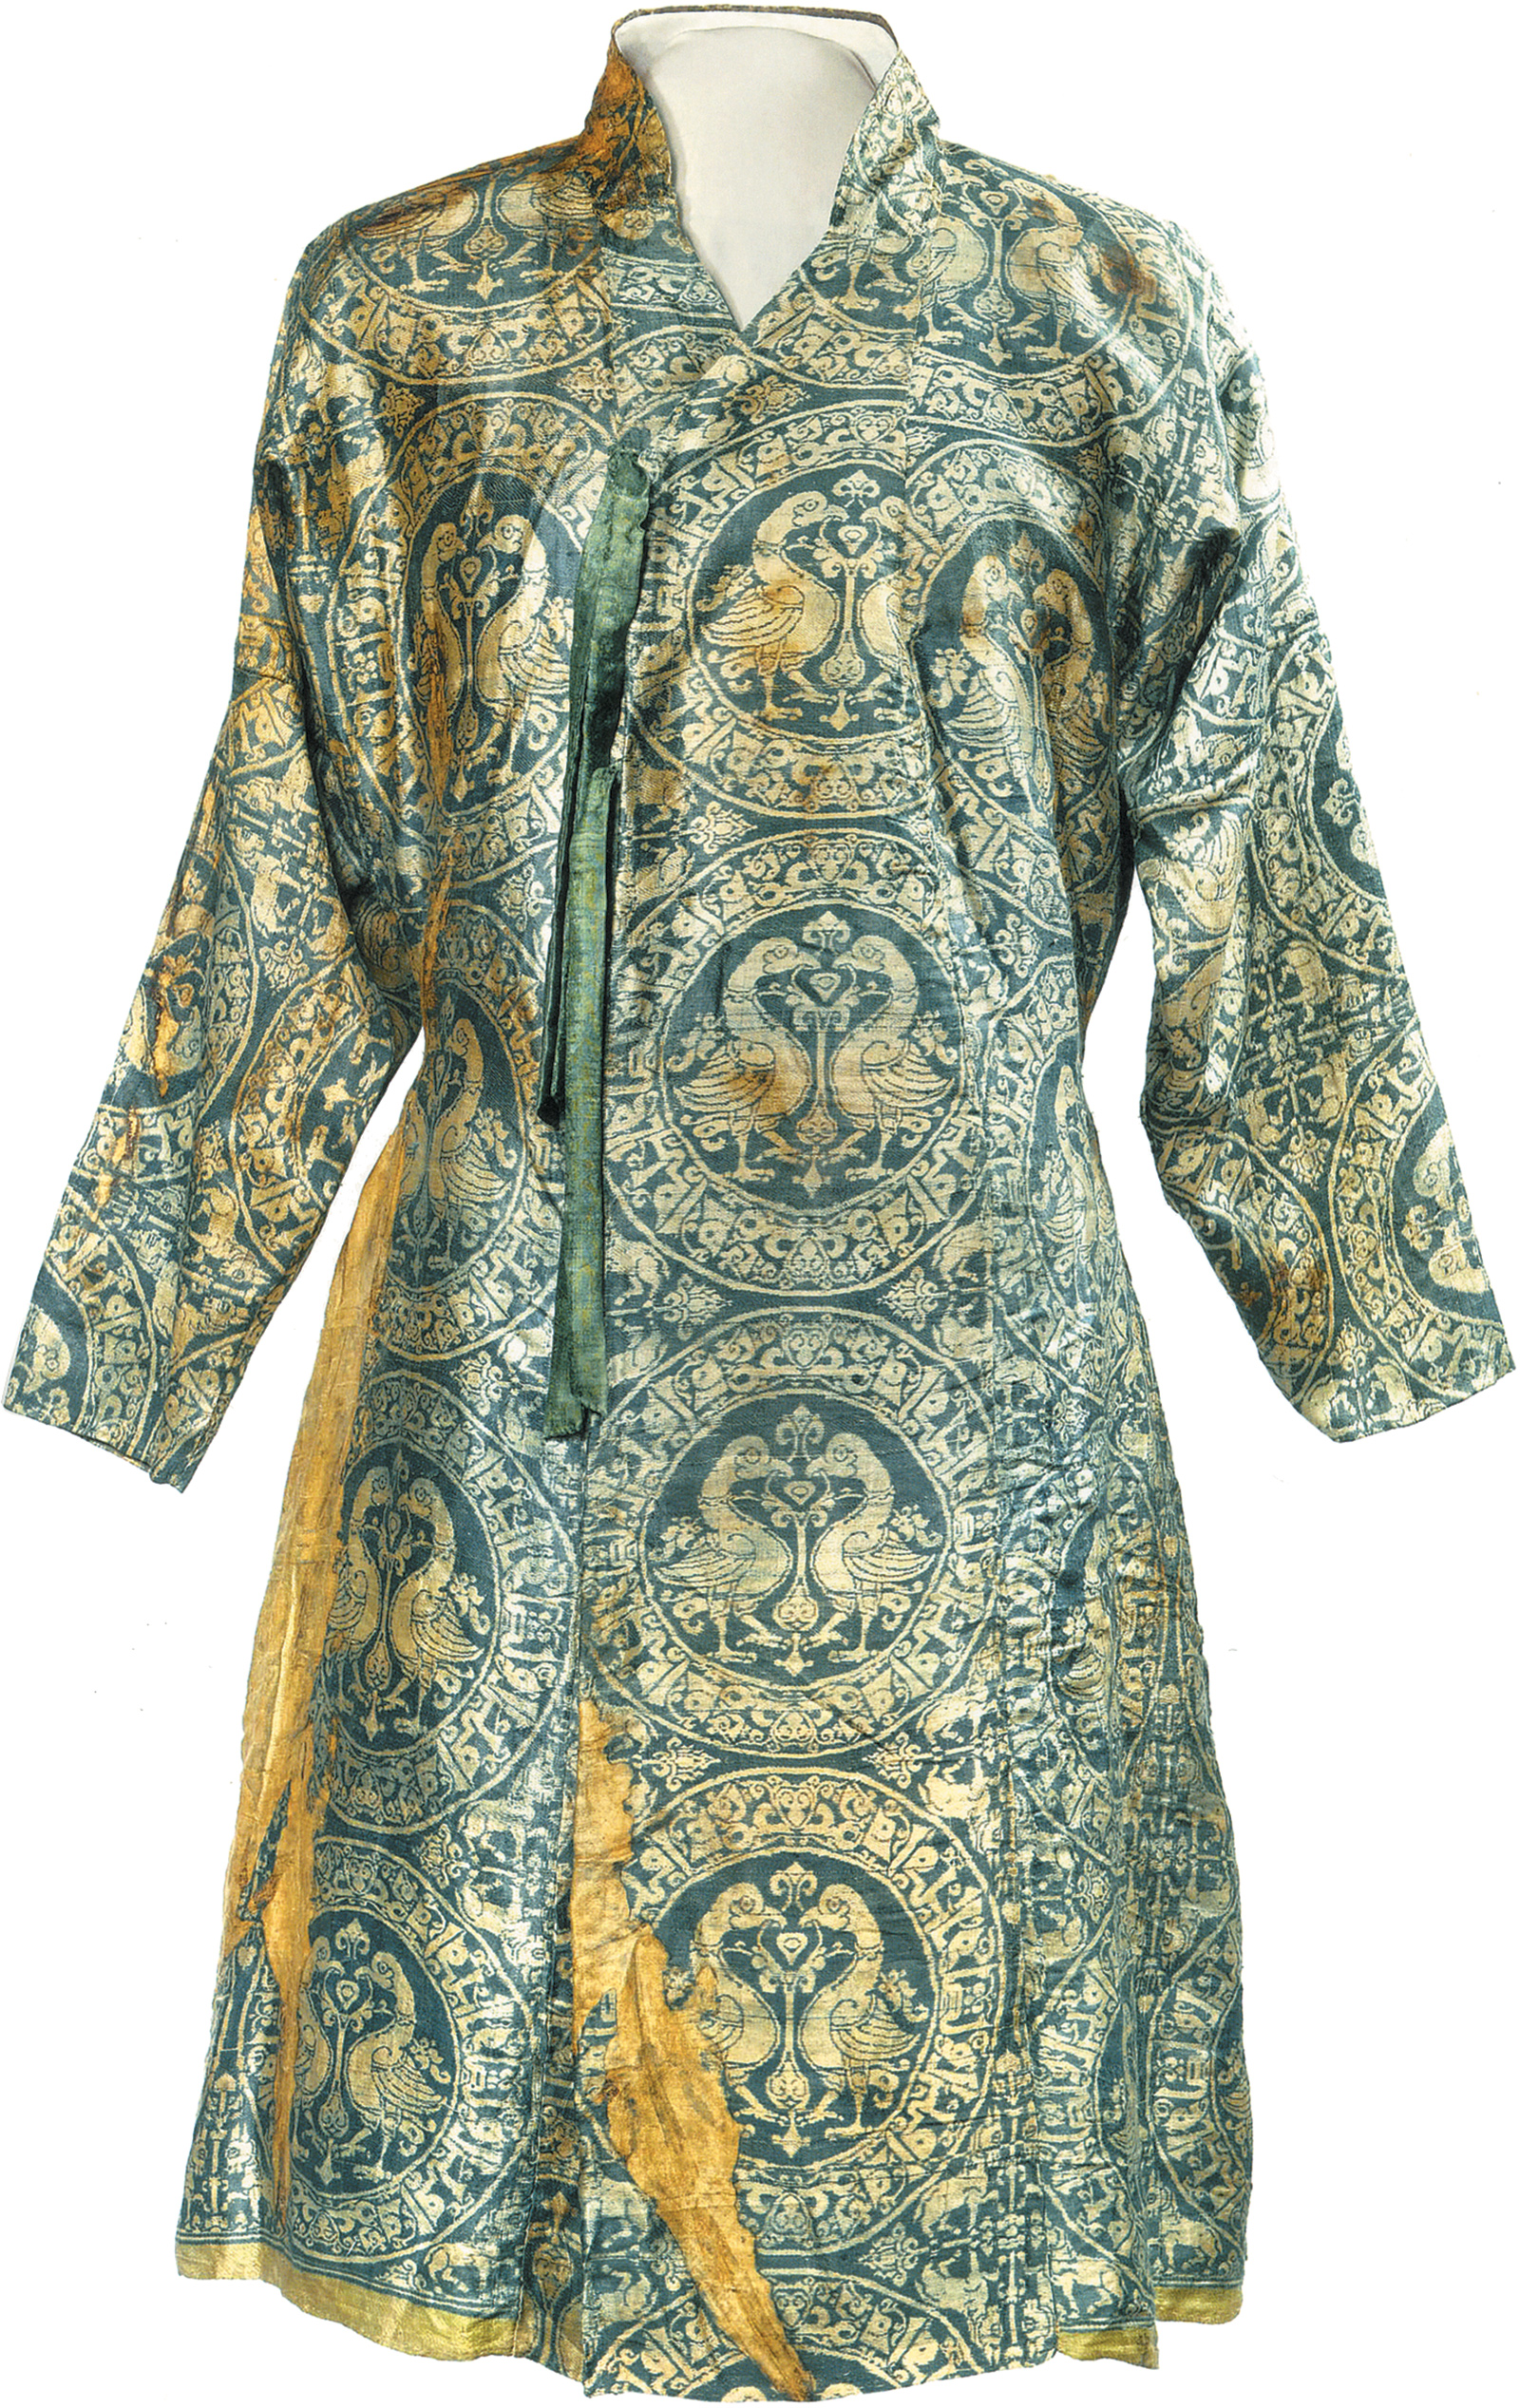 A silk robe with 'Glory, prosperity, and victory' written in Arabic around each pair of birds, Iran, eleventh­–twelfth century